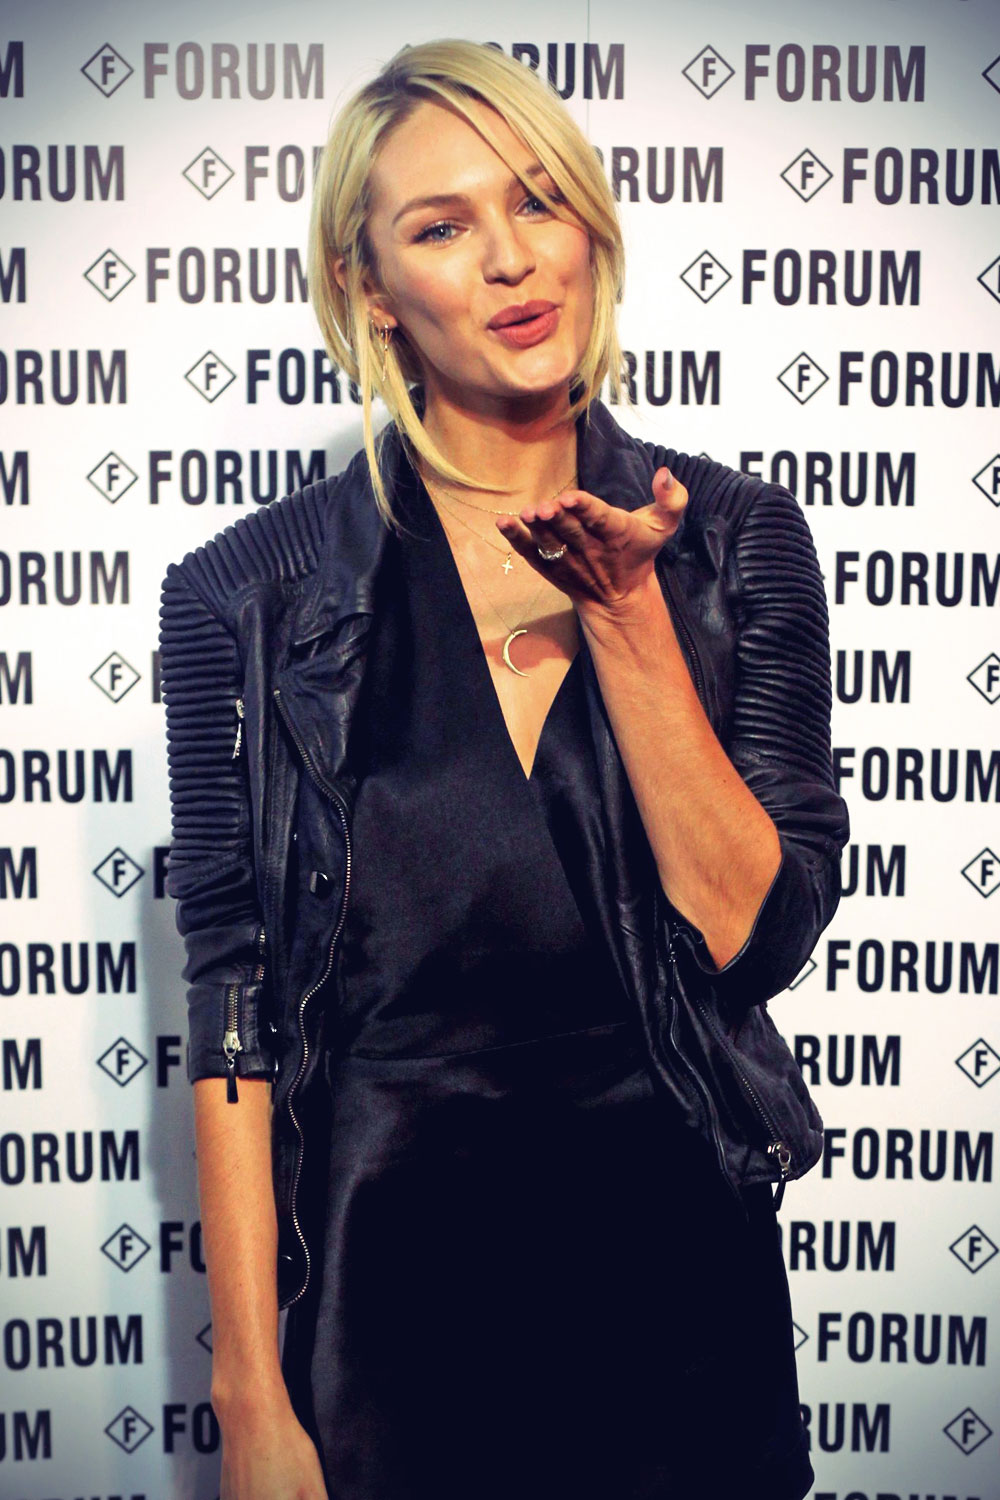 Candice Swanepoel attends Forum Fall Winter 2014 Fashion Show